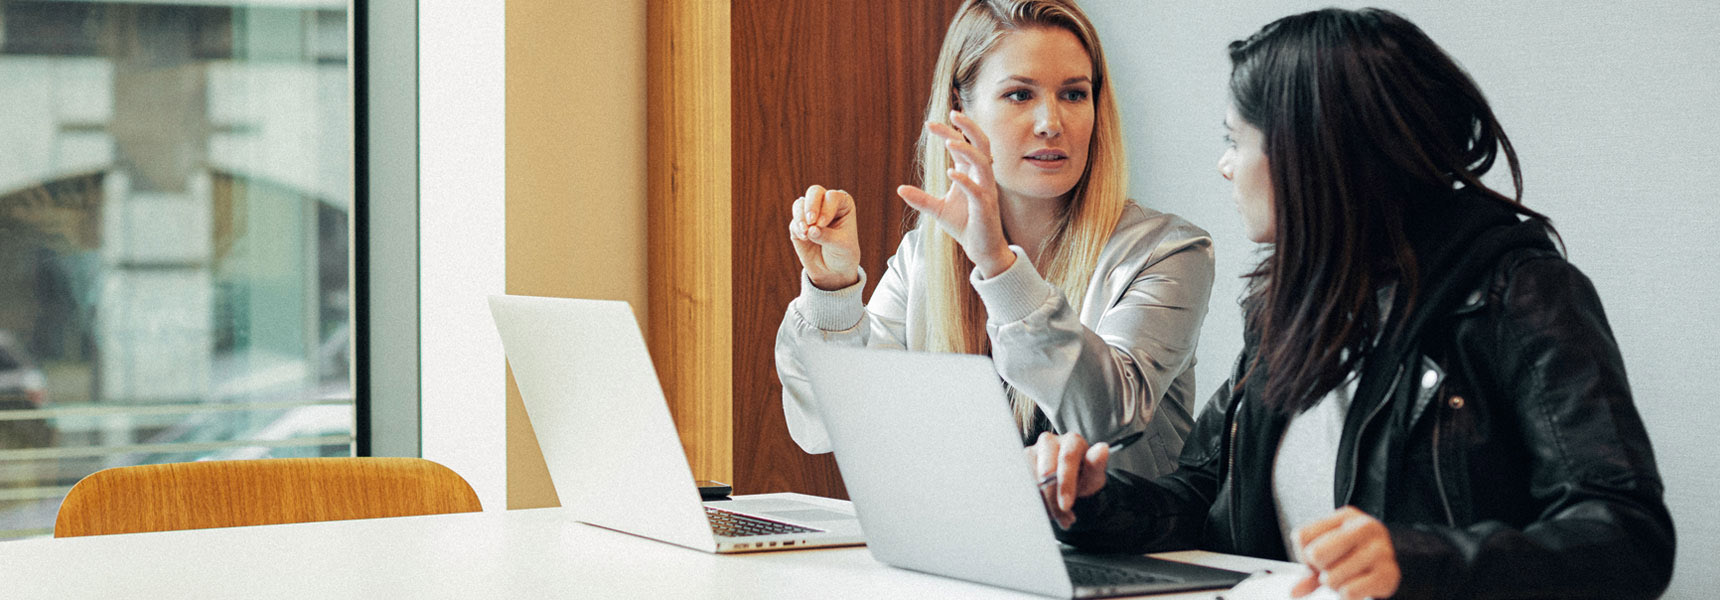 Photo of two women reviewing something on a computer.